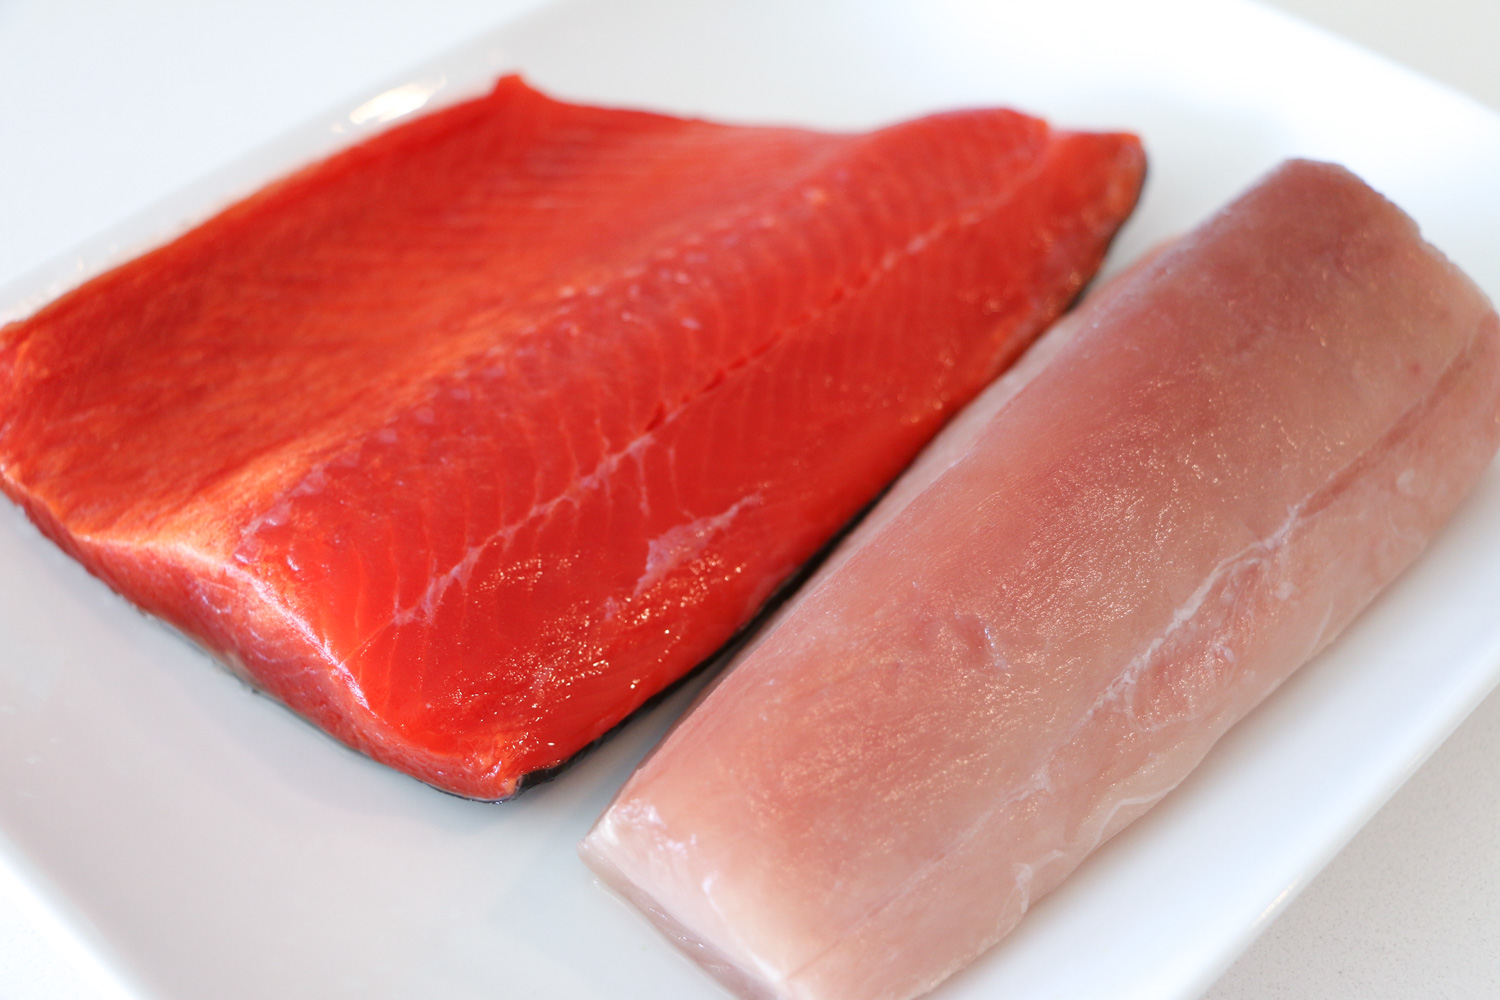 Fresh albacore tuna and sockeye salmon from BC